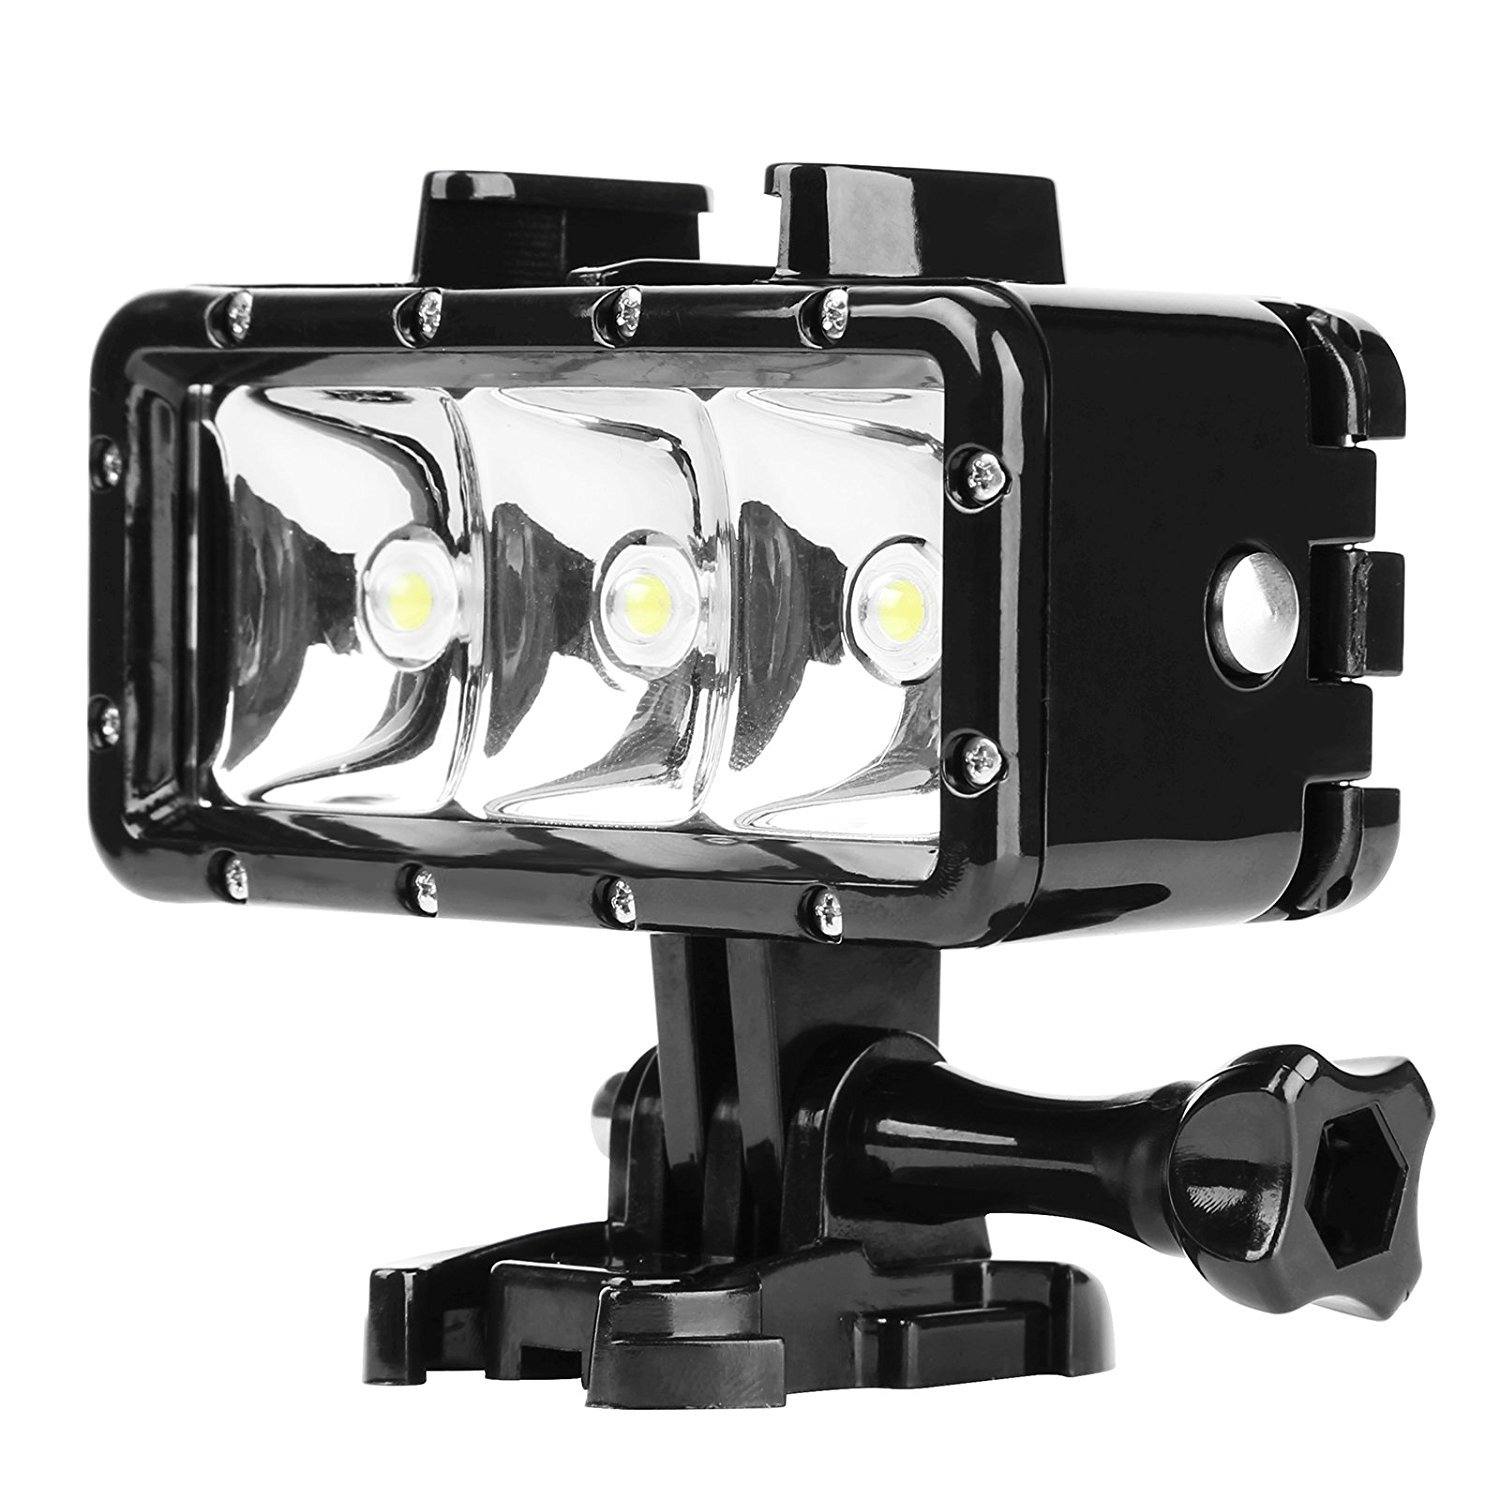 D&F Underwater Flash Diving Light 40M Waterproof with 3 LED Dimmable Flashlight Built-in 1200mAh Rechargeable Battery for GoPro Hero 6/5/4/3+/3, SJCAM,SJ4000 SJ5000 Yi & Other Action Camera